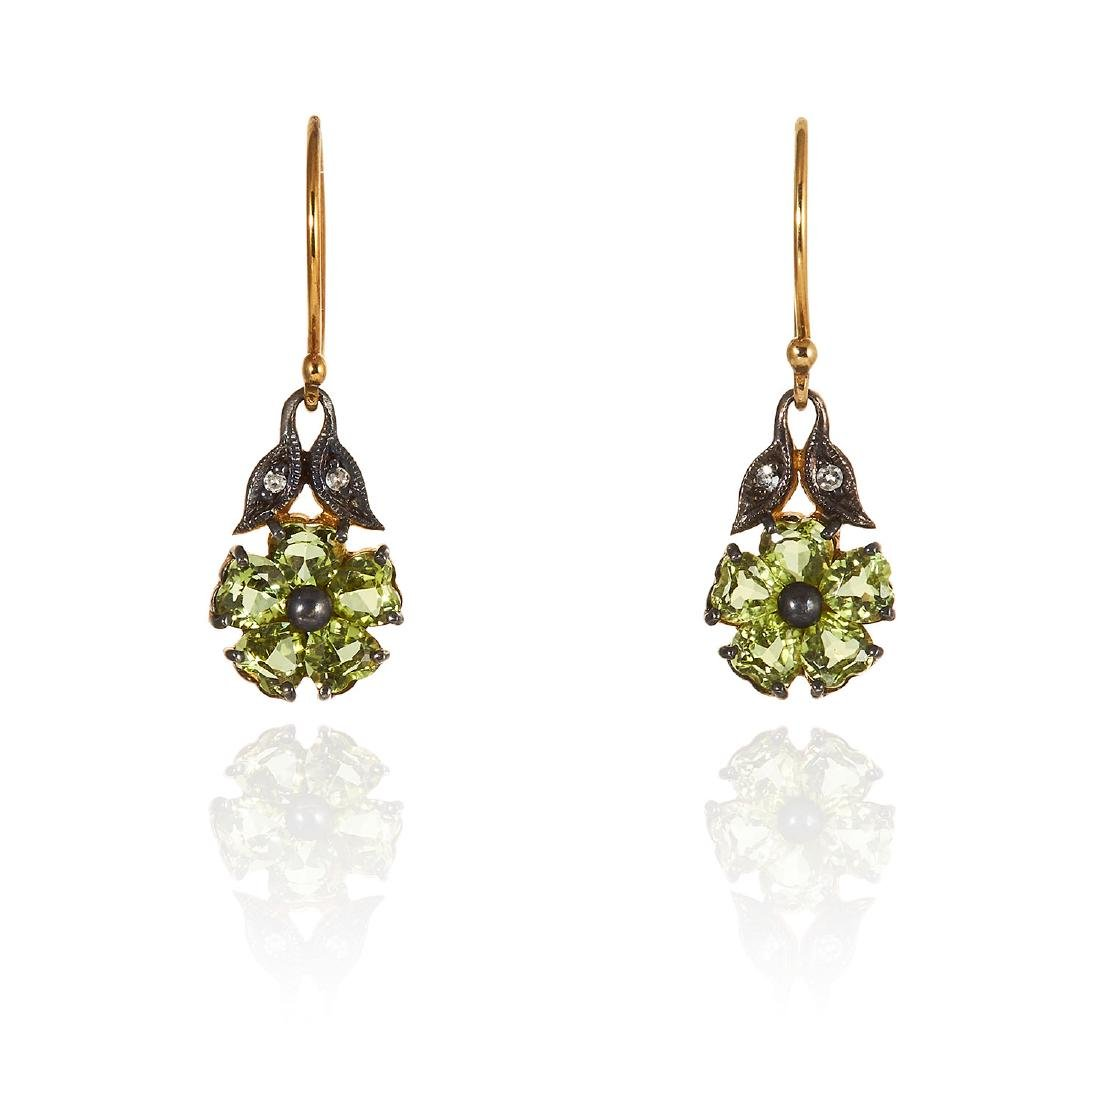 A PAIR OF PERIDOT AND DIAMOND EARRINGS in yellow gold